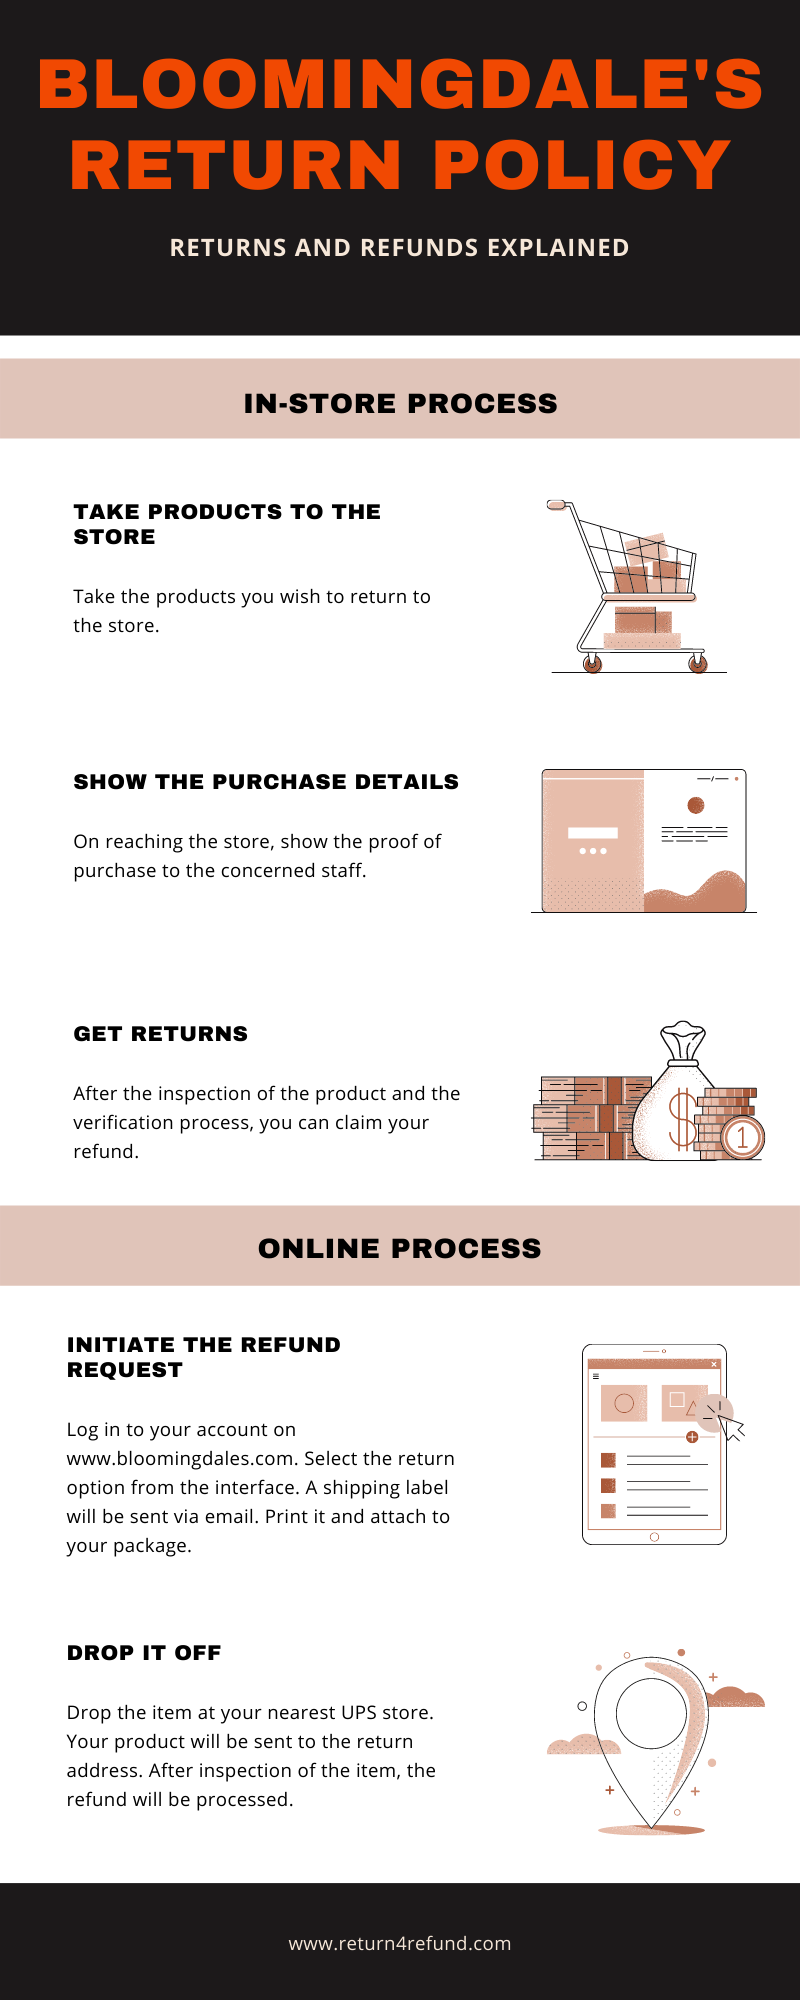 Bloomingdale's Return Policy infographic